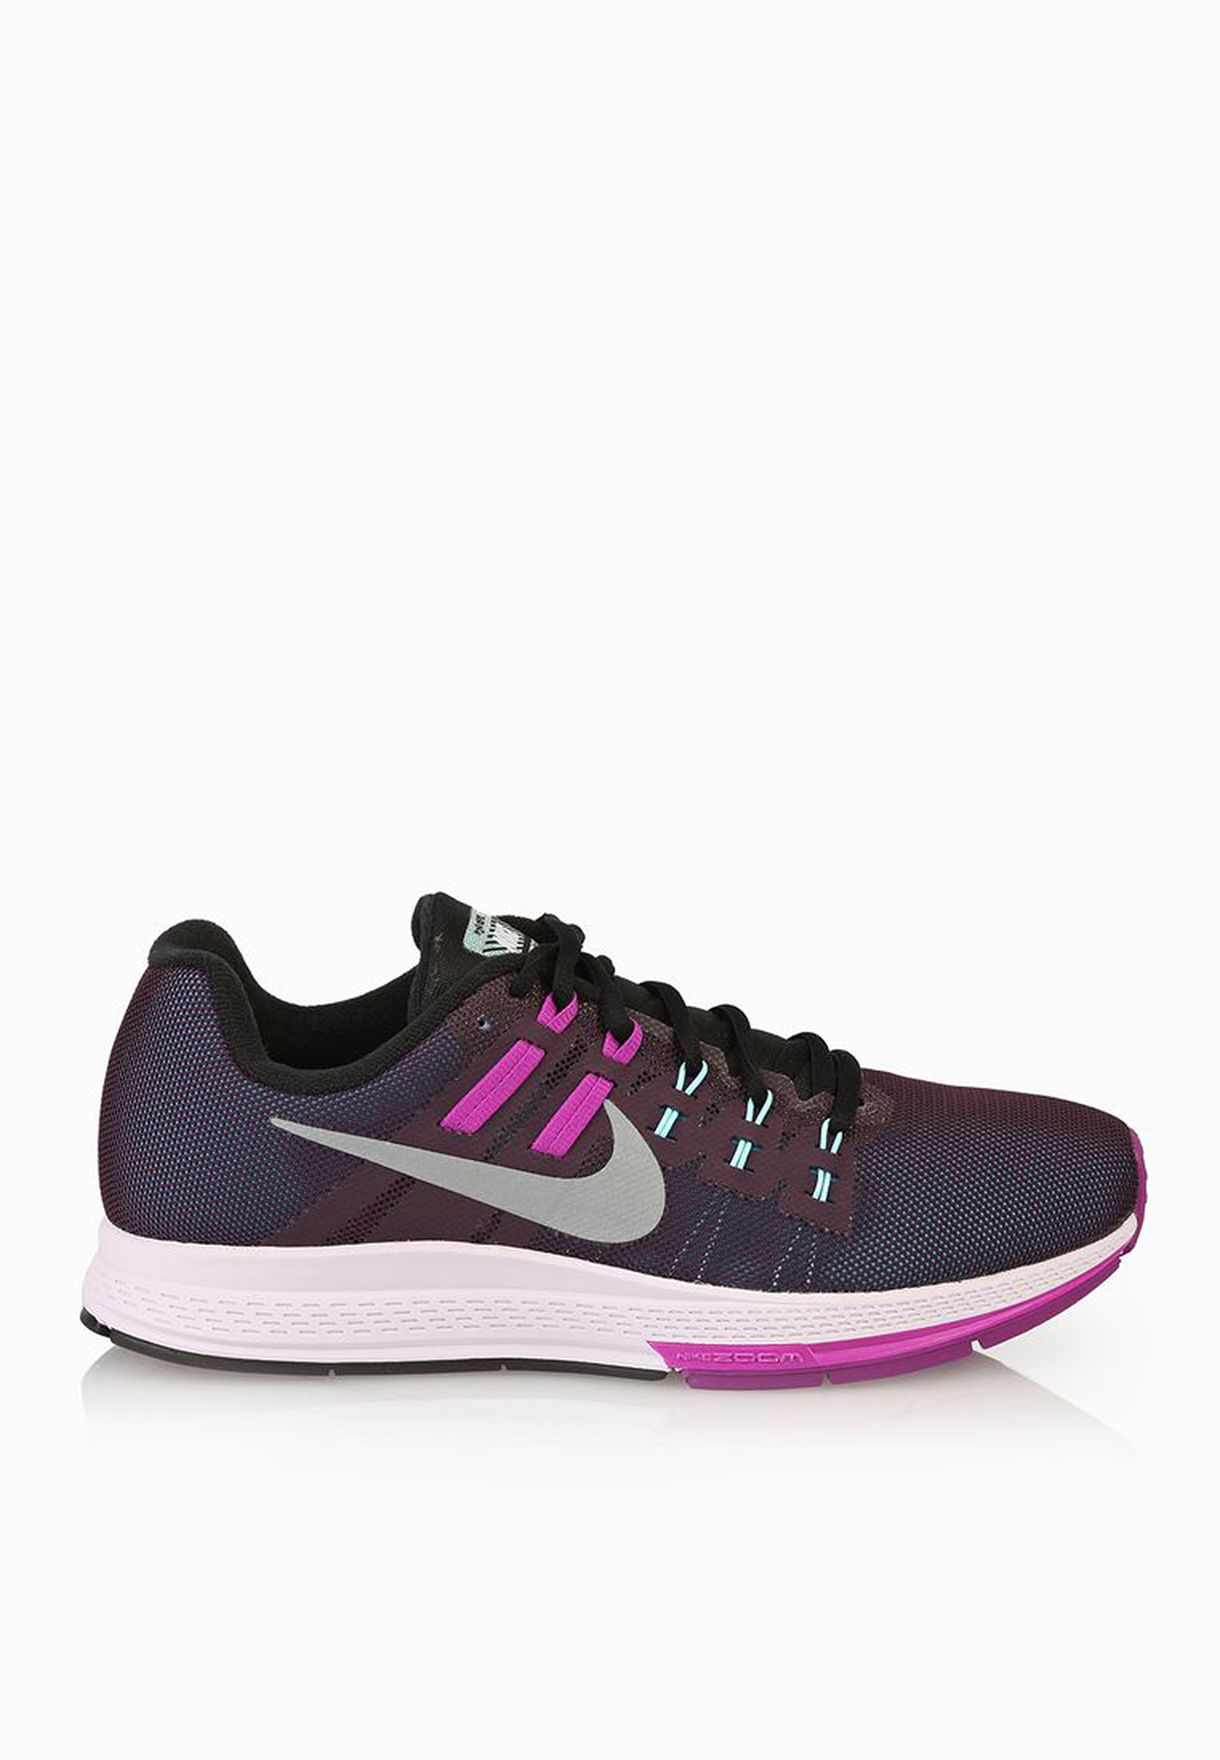 best sneakers 57f0d 0a13d Air Zoom Structure 19 Flash